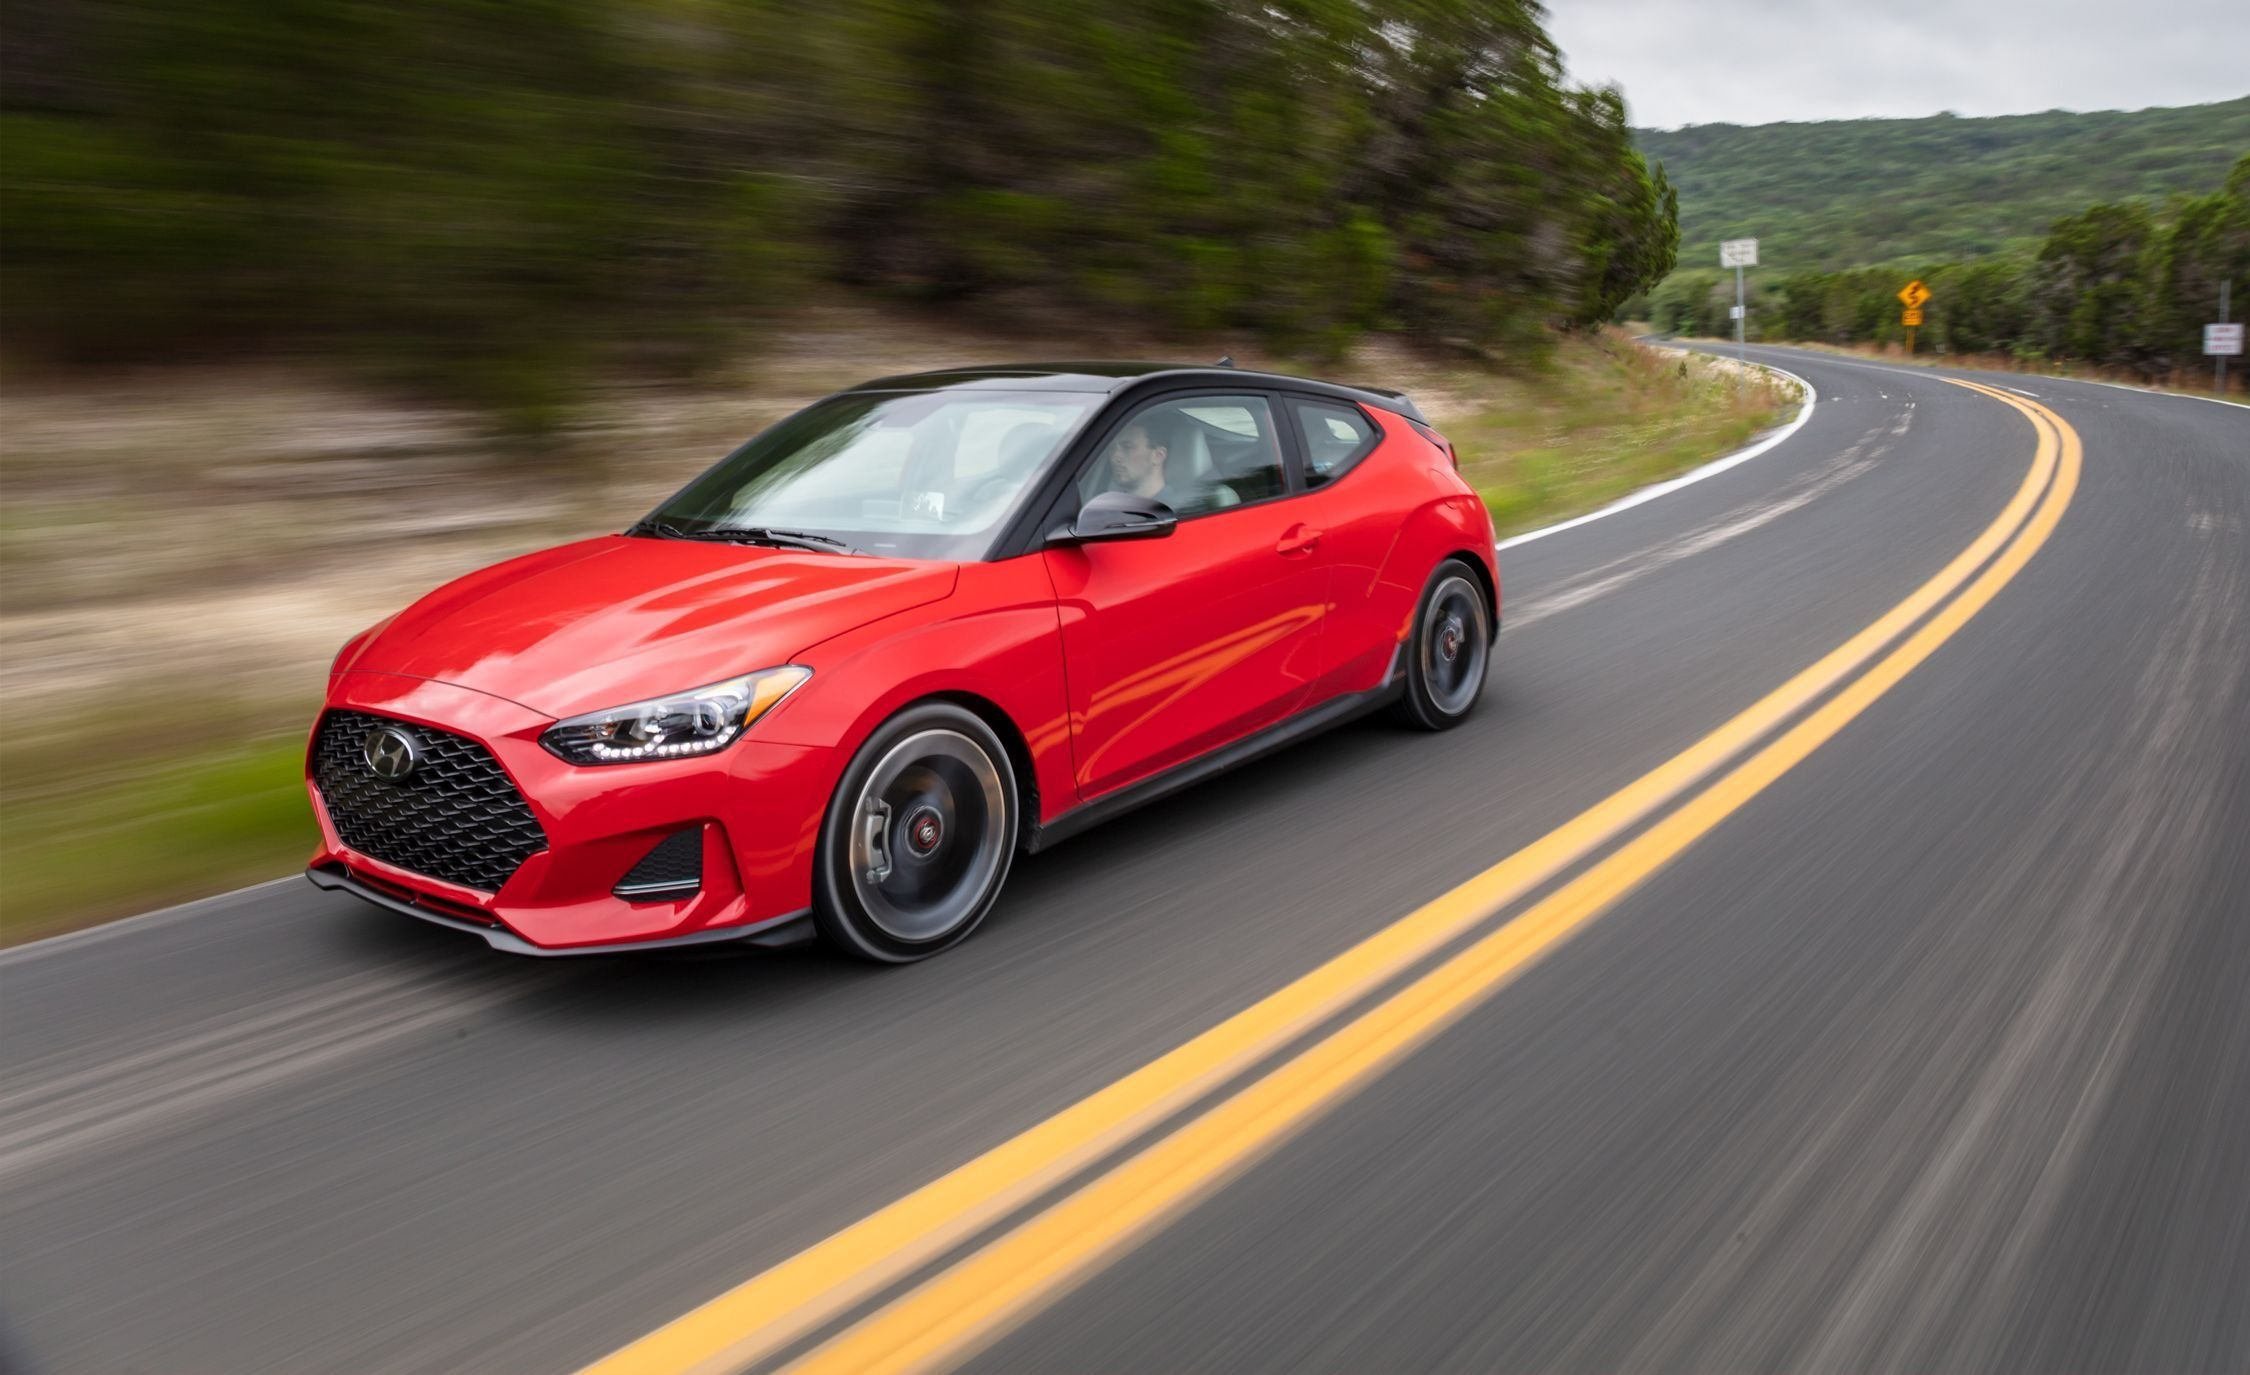 2021 Hyundai Veloster Turbo Price And Release Date In 2020 Veloster Turbo Hyundai Veloster Hyundai